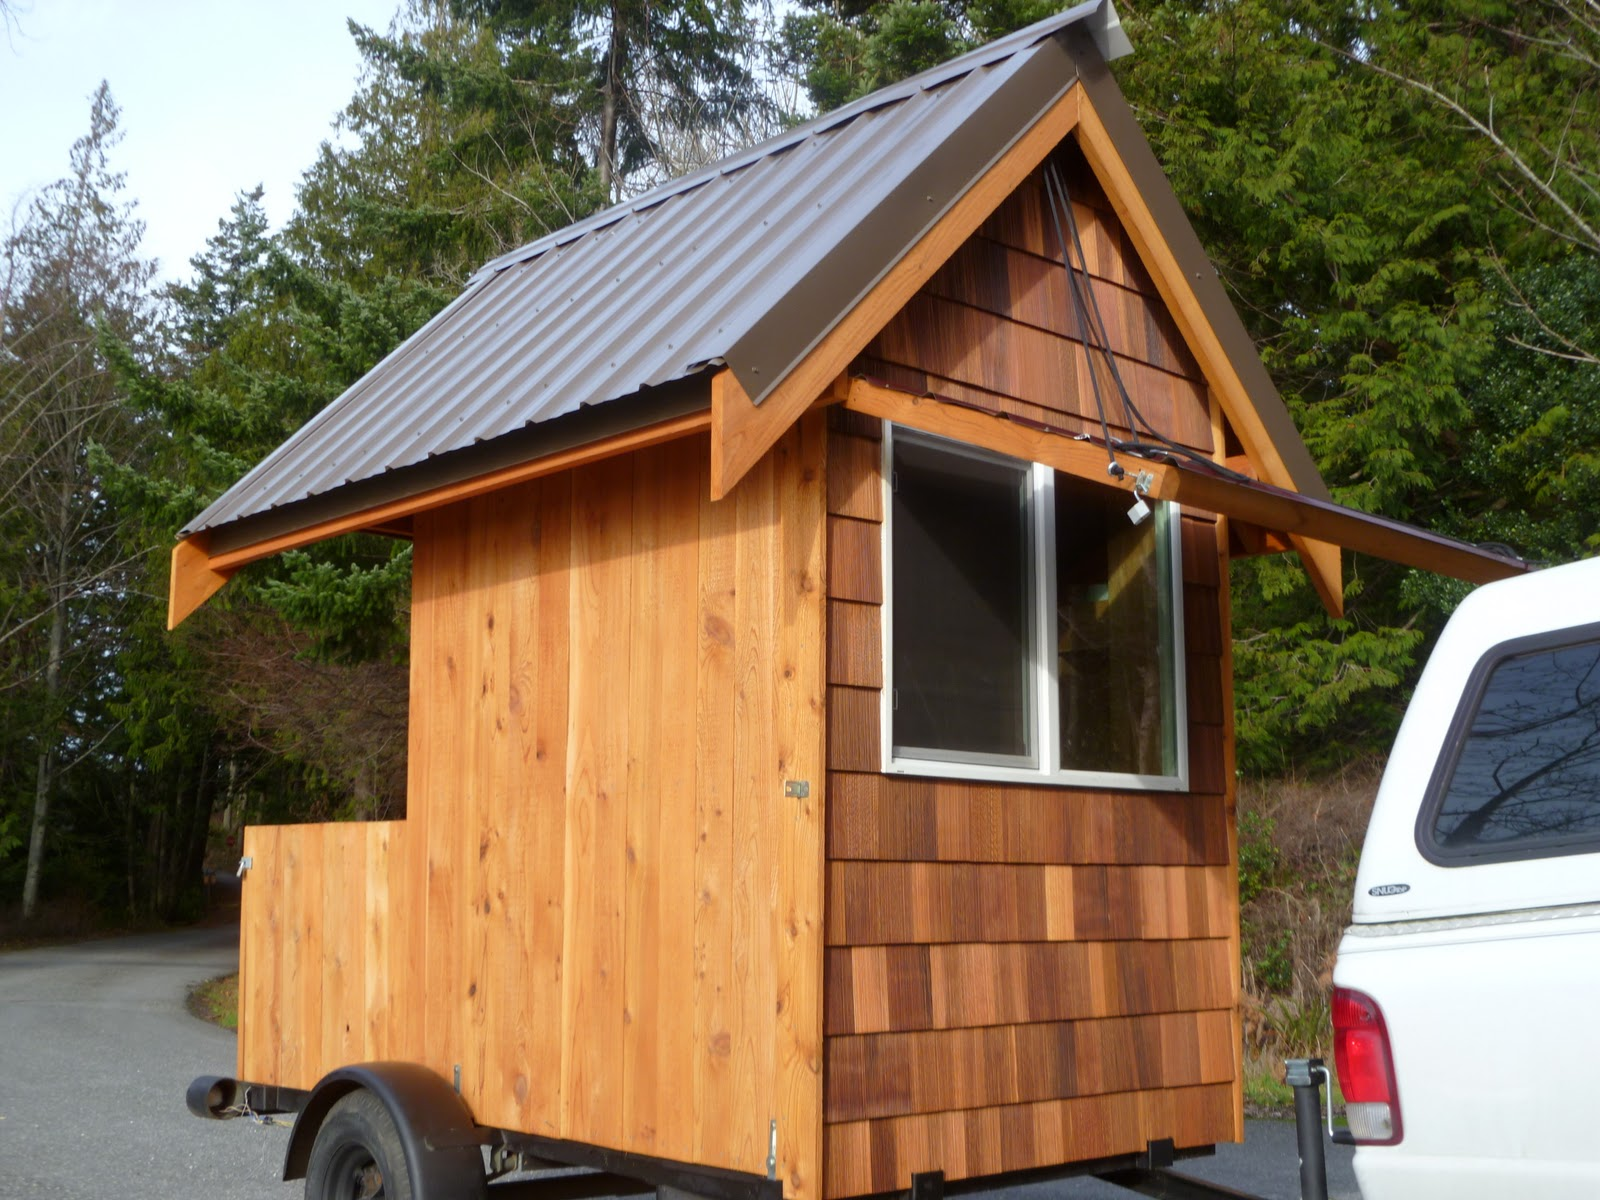 Relaxshackscom Eli Curtis Tiny Cabin On Wheels A micro